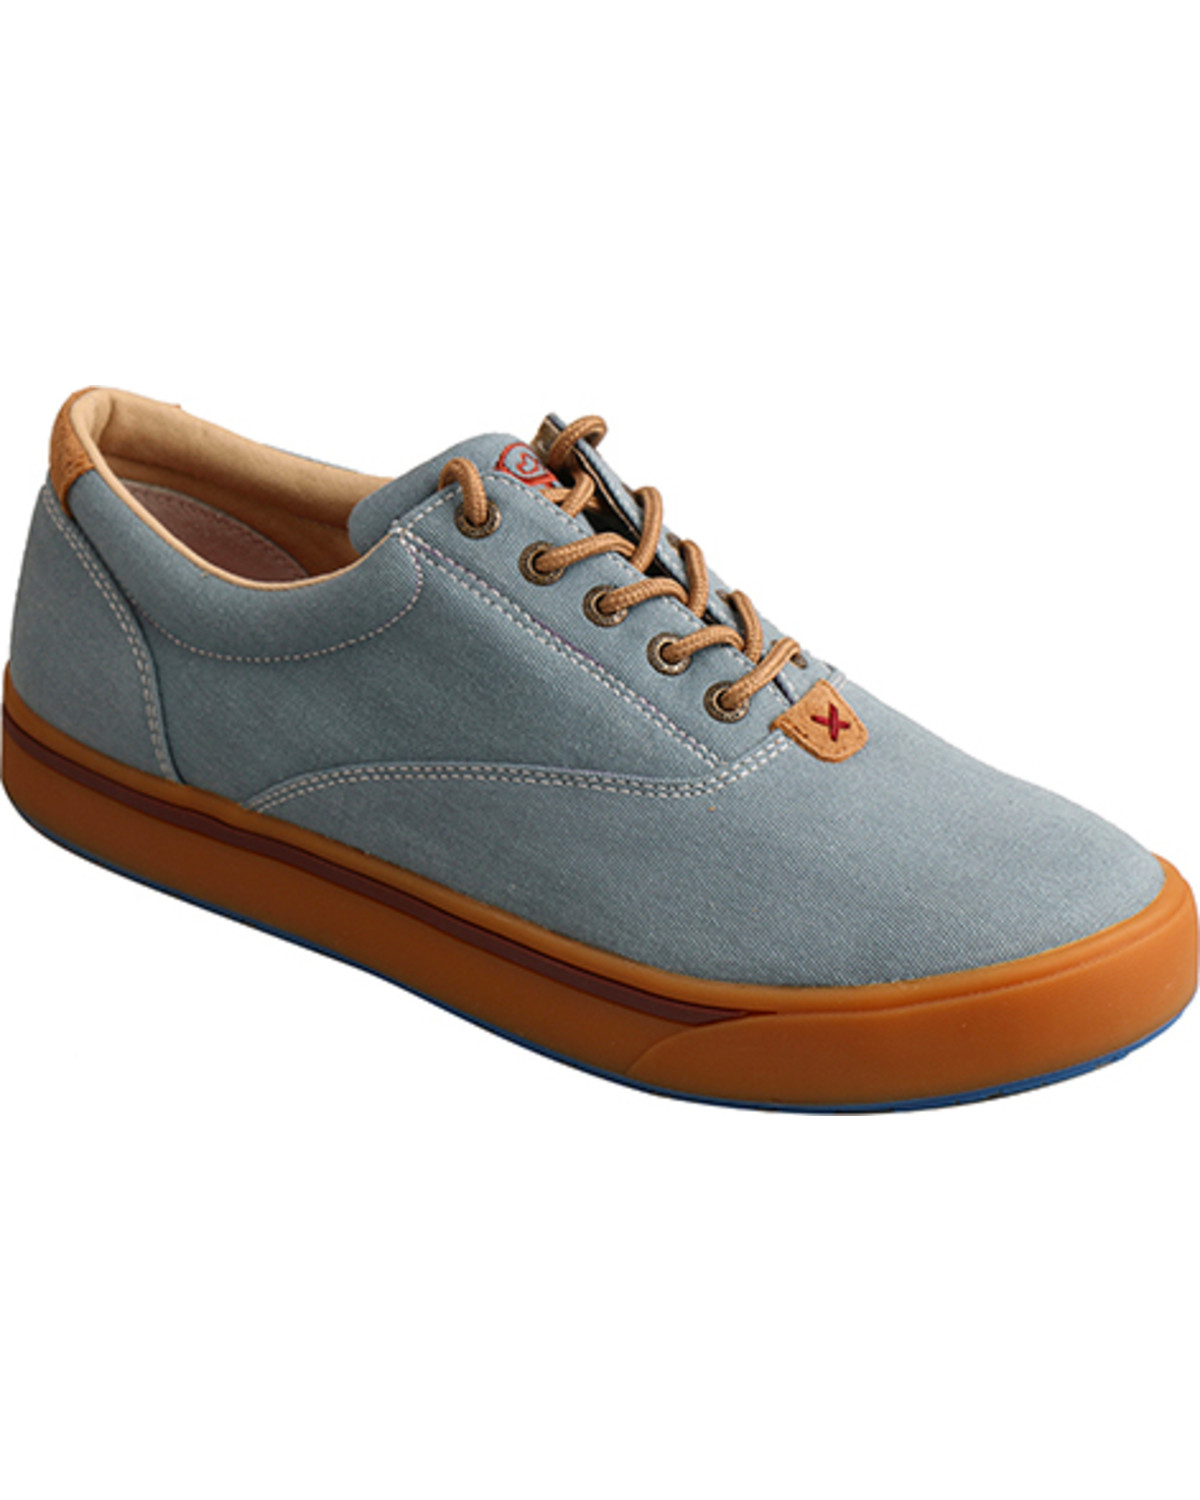 edfe7429f6a Hooey Lopers by Twisted X Men s Blue Canvas Shoes